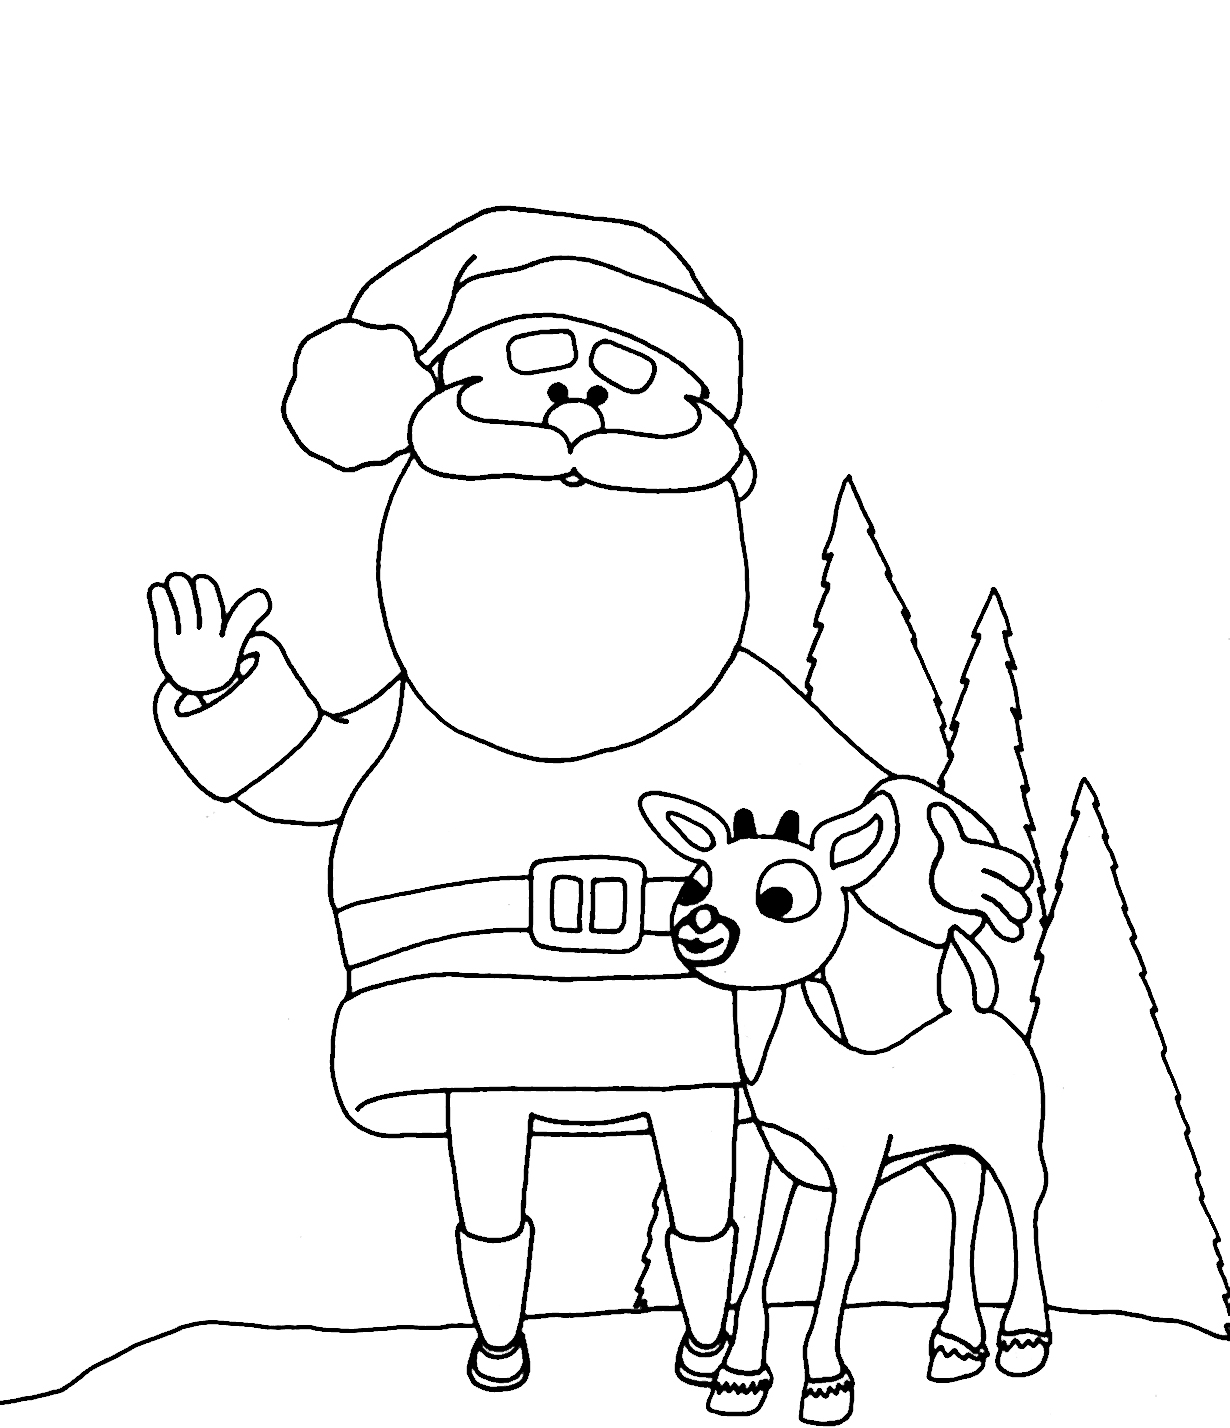 1230x1428 It S Here Clarice The Reindeer Coloring Page R